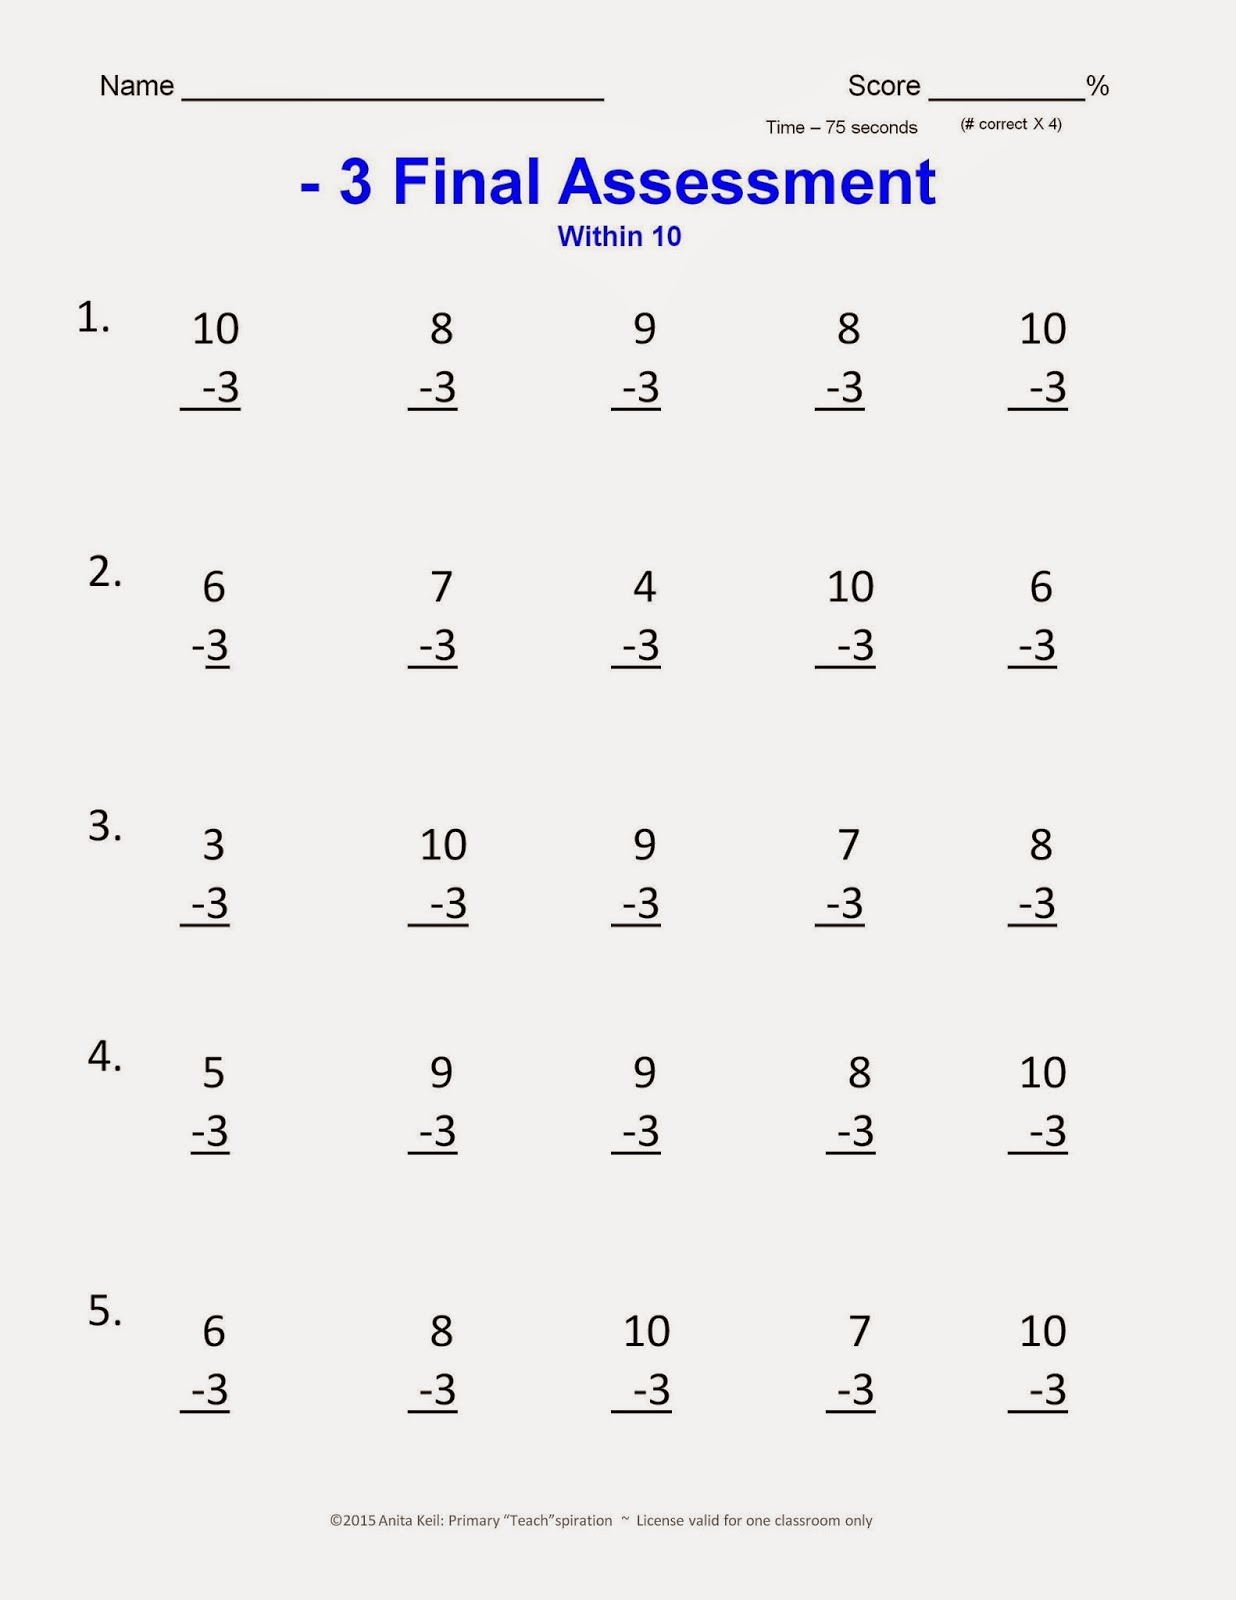 4 DAILY STEPS TO MATH FACT FLUENCY - Primary Teachspiration